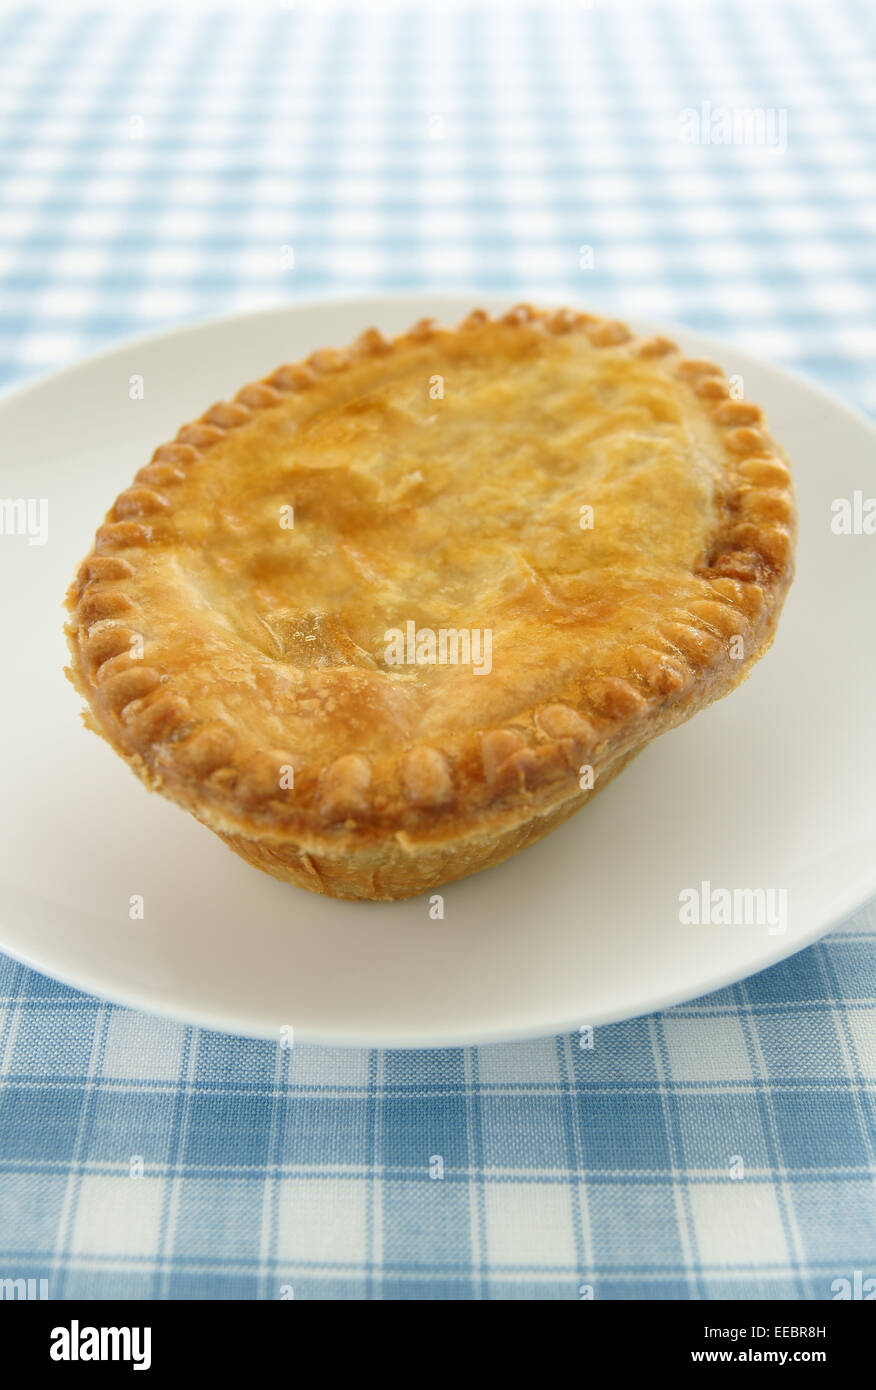 A pie with a golden crust on a white plate and blue check table cloth - Stock Image